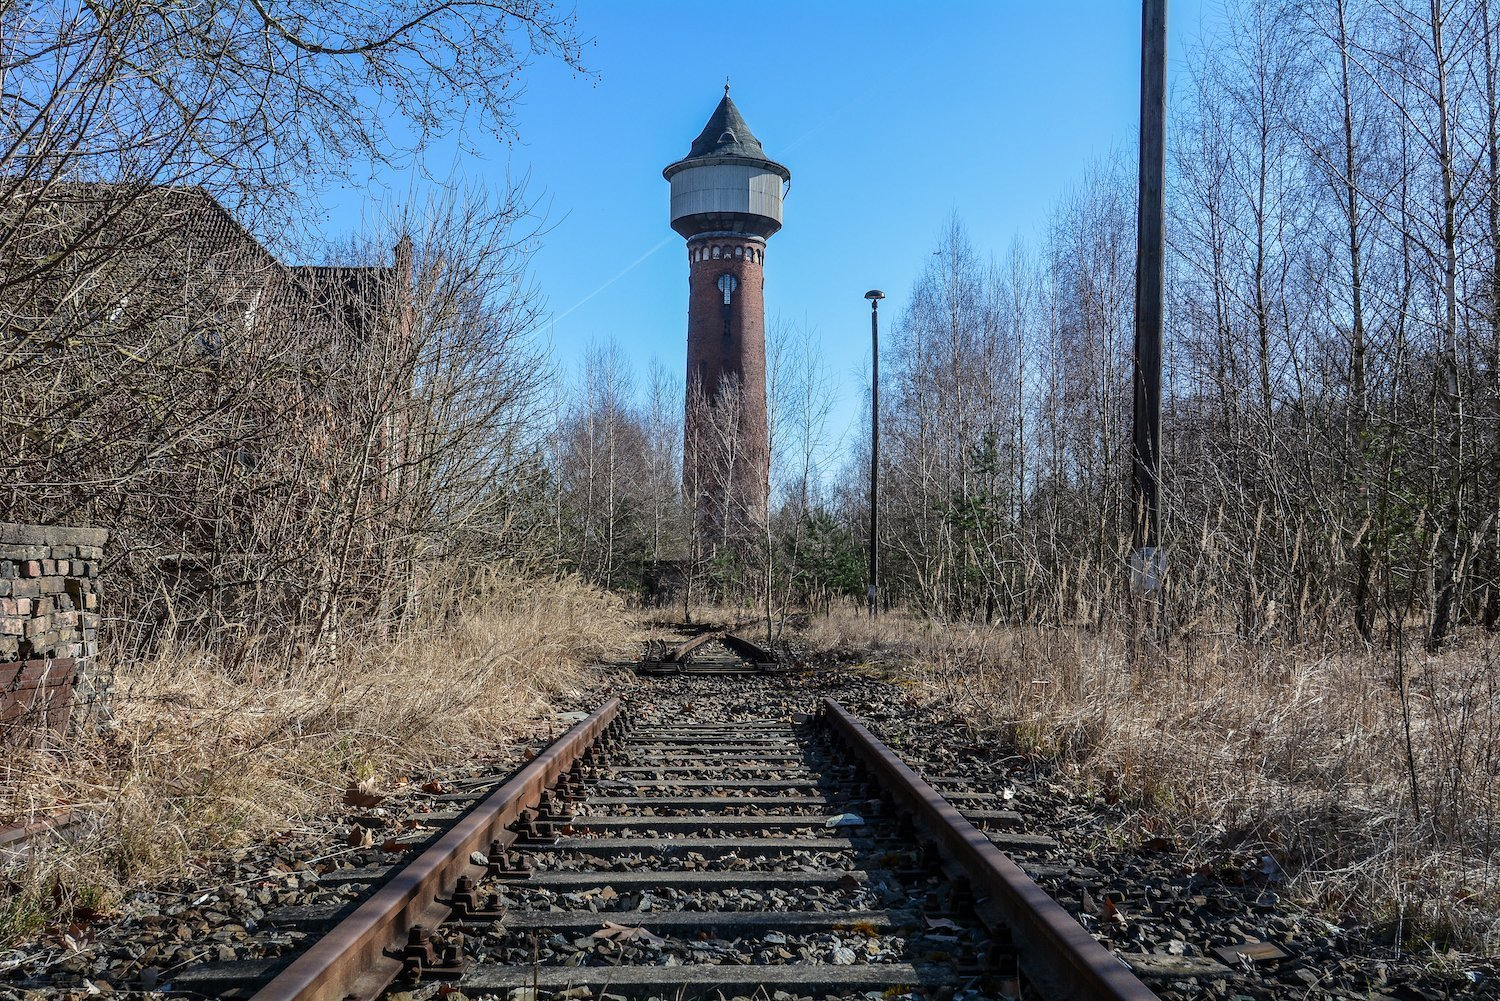 water tower train tracks rangierbahnhof wustermark train yard elstal berlin lost places abandoned urbex brandenburg